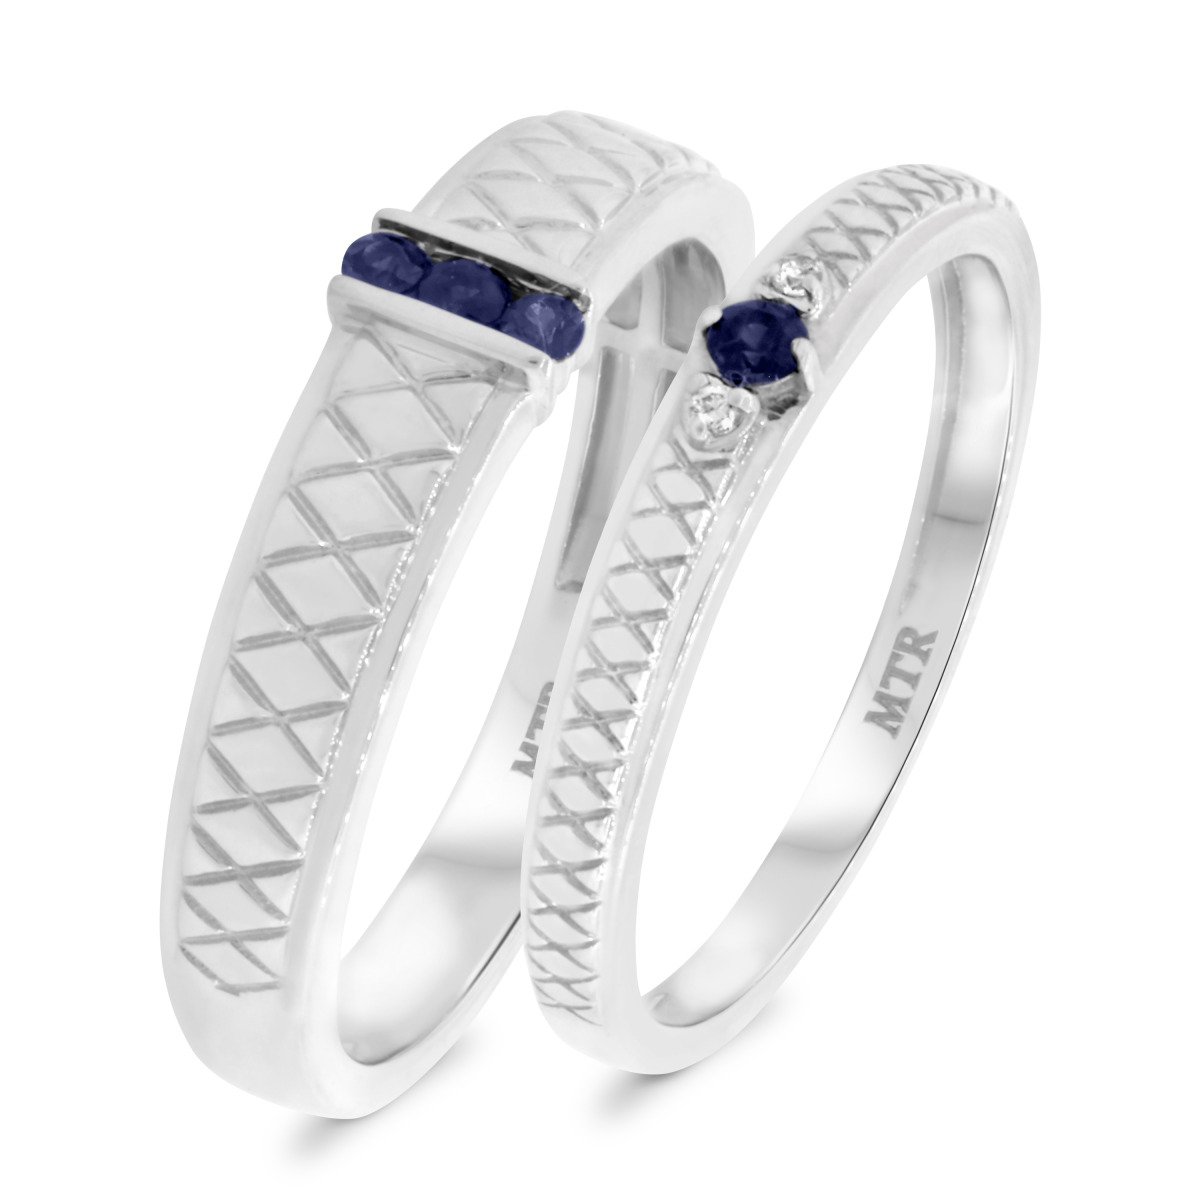 1/7 CT. T.W. Sapphire Matching Wedding Band Set 10K White Gold